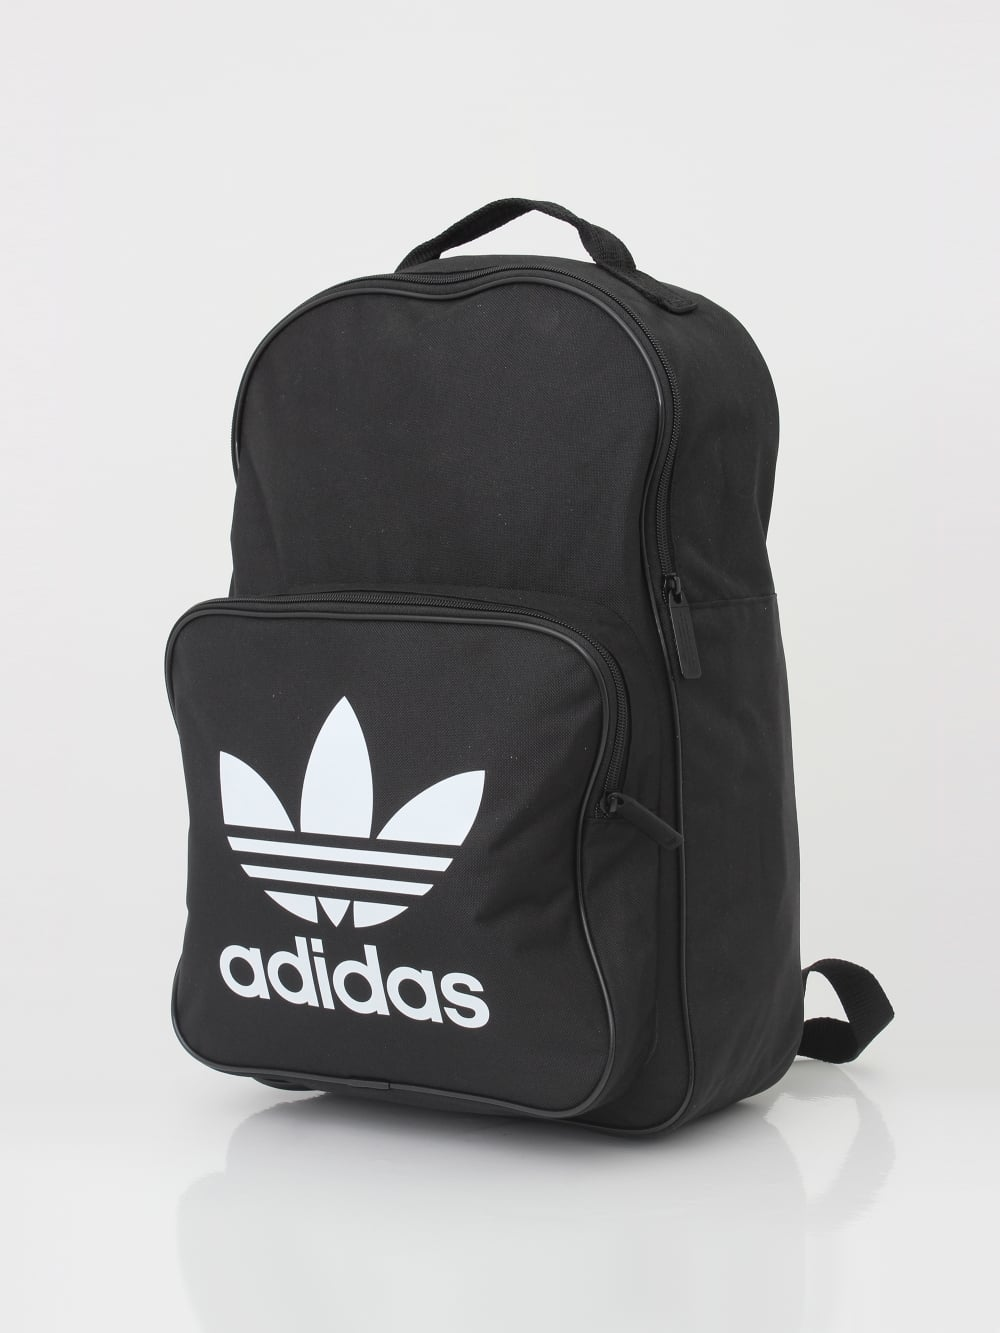 71593954ed56 adidas Classic Trefoil Backpack in Black - Northern Threads